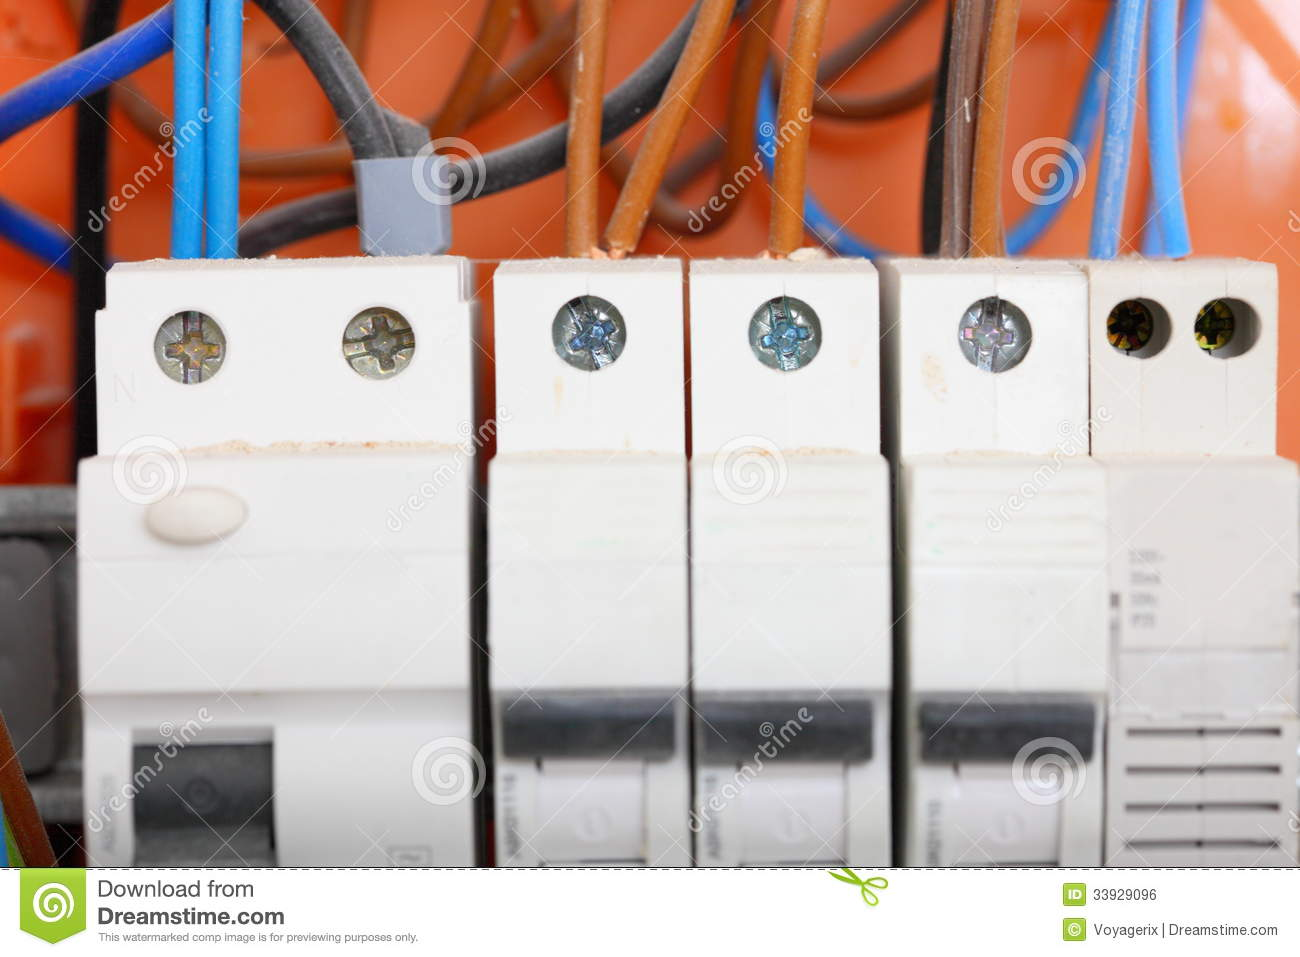 Ta4 Wiring Diagram further Pid Ac Relay Wiring Diagram additionally Electrical Meter Panel Box Dimensions further MYPIN 20TA4 20Programming additionally Wiring A Pid Temperature Controller. on mypin pid controller wiring diagrams